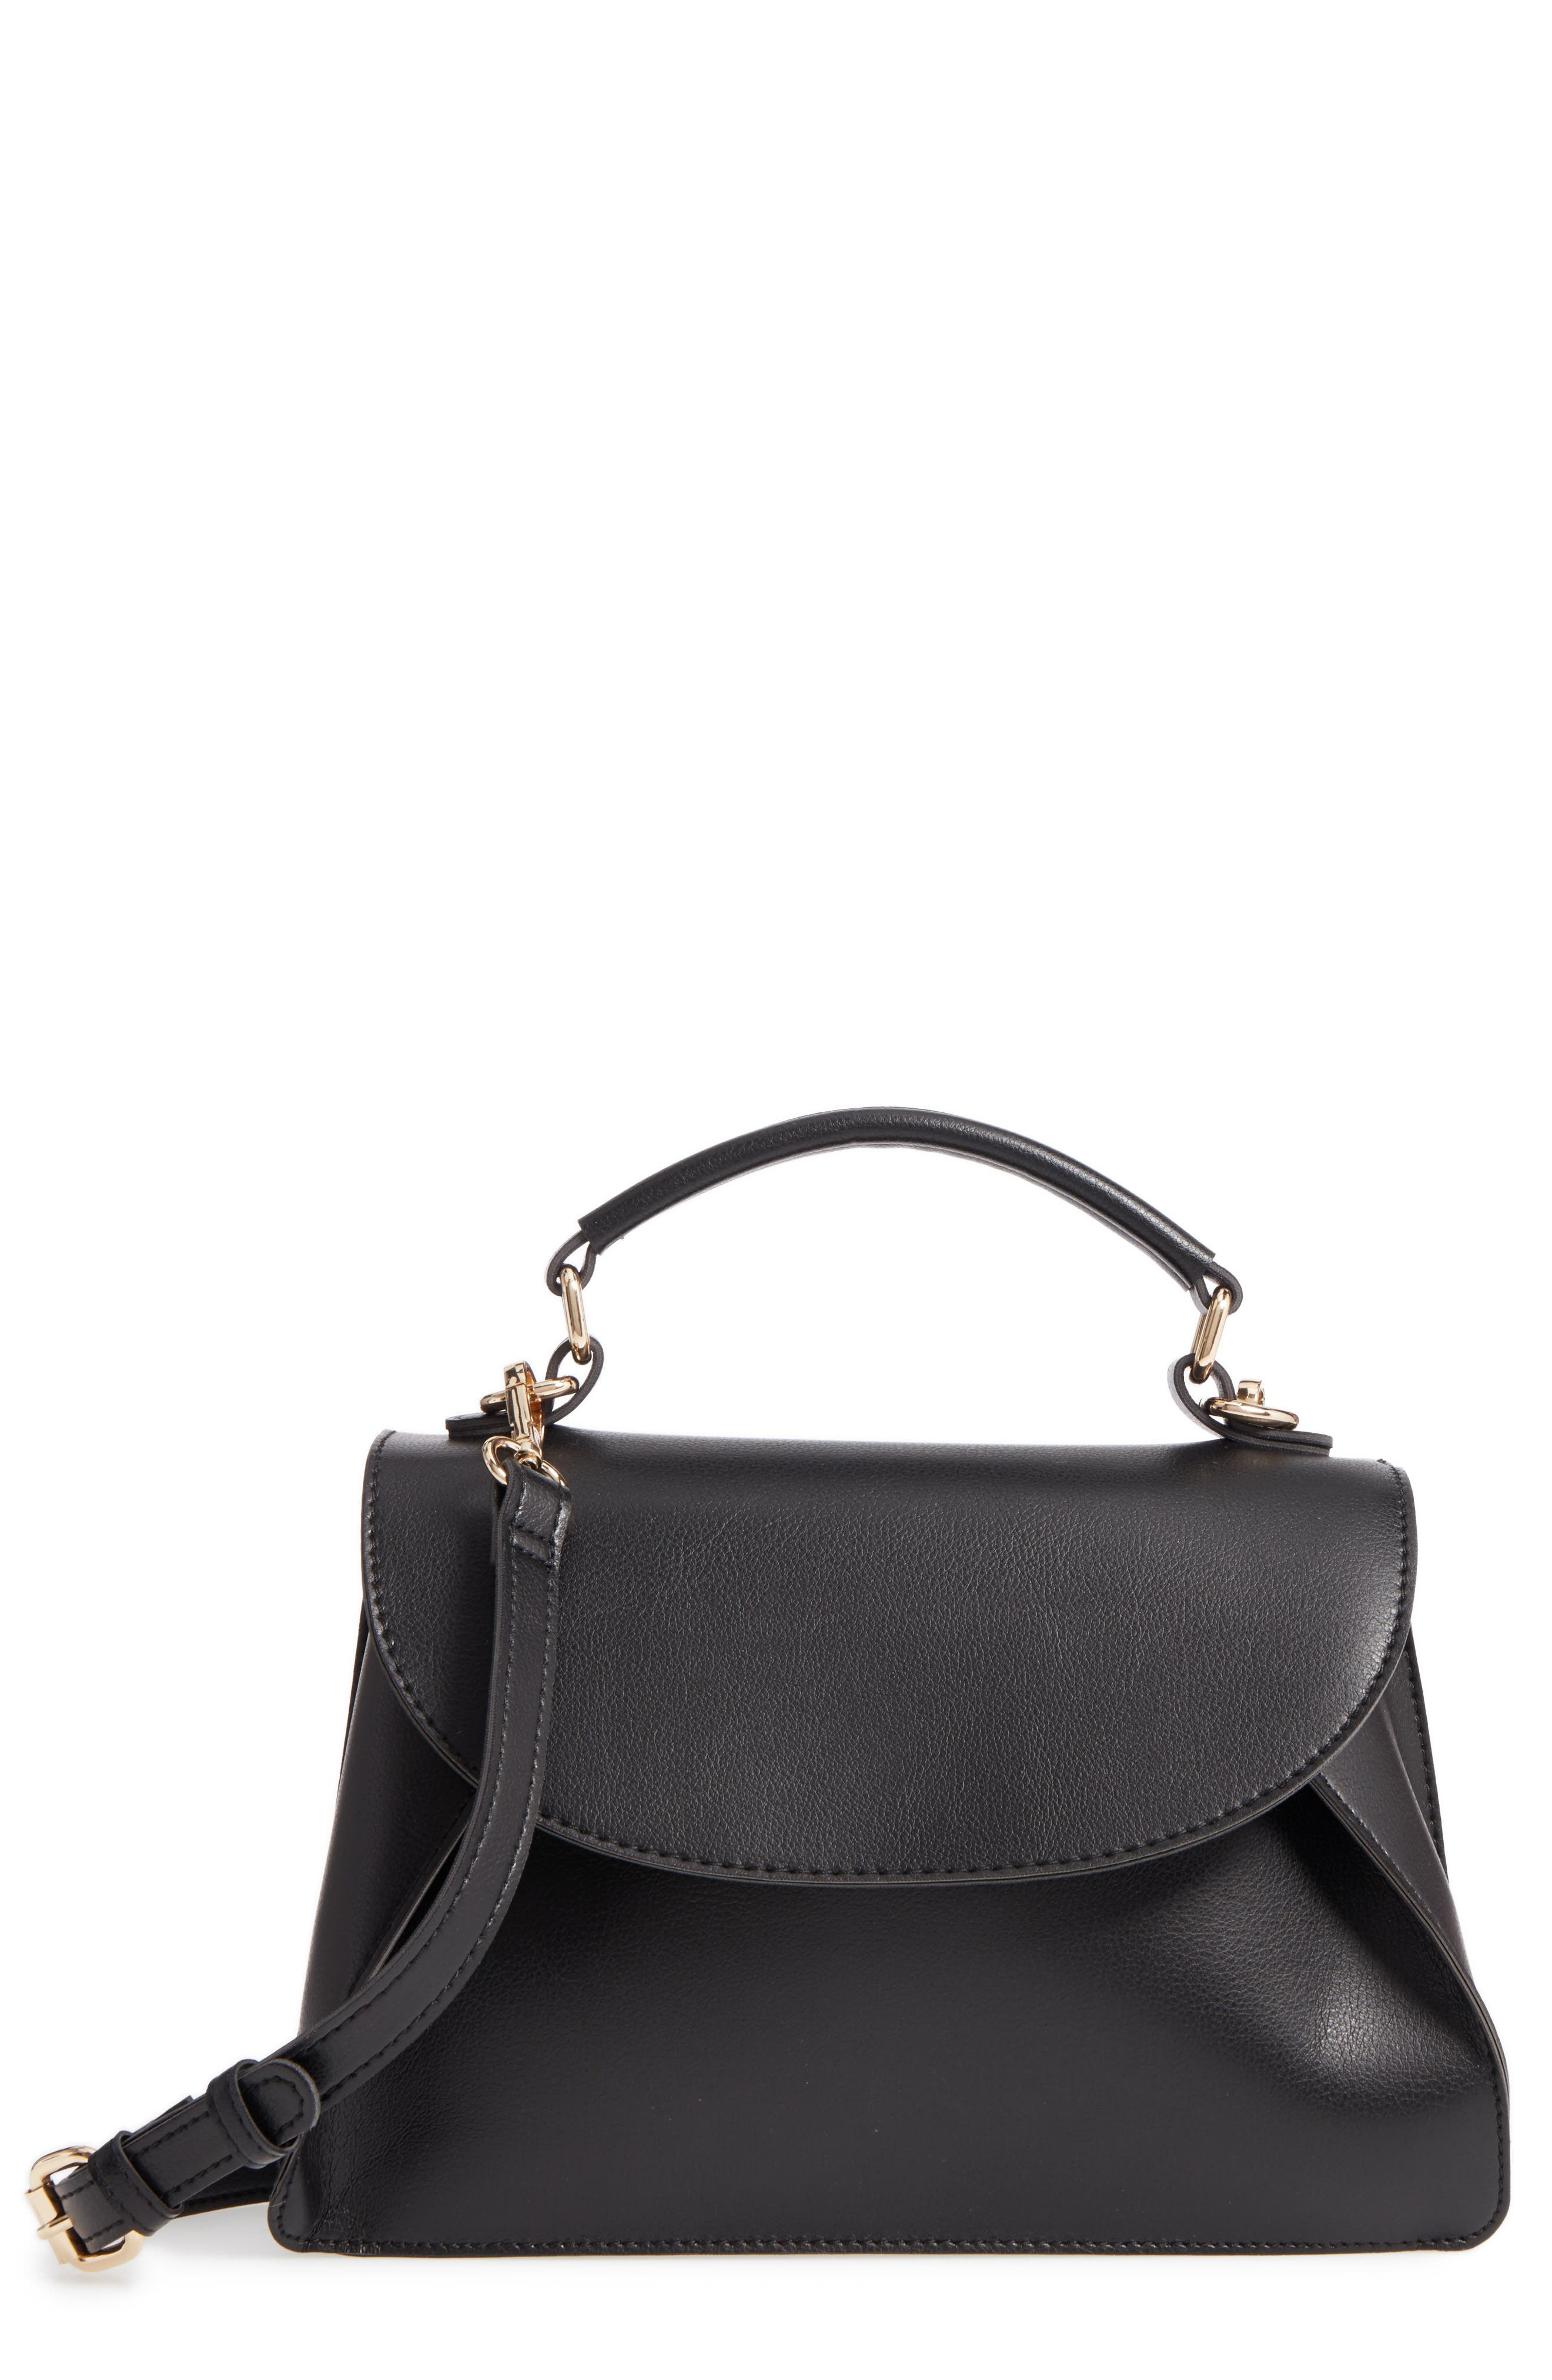 Main Image - Sole Society Izzy Faux Leather Top Handle Satchel